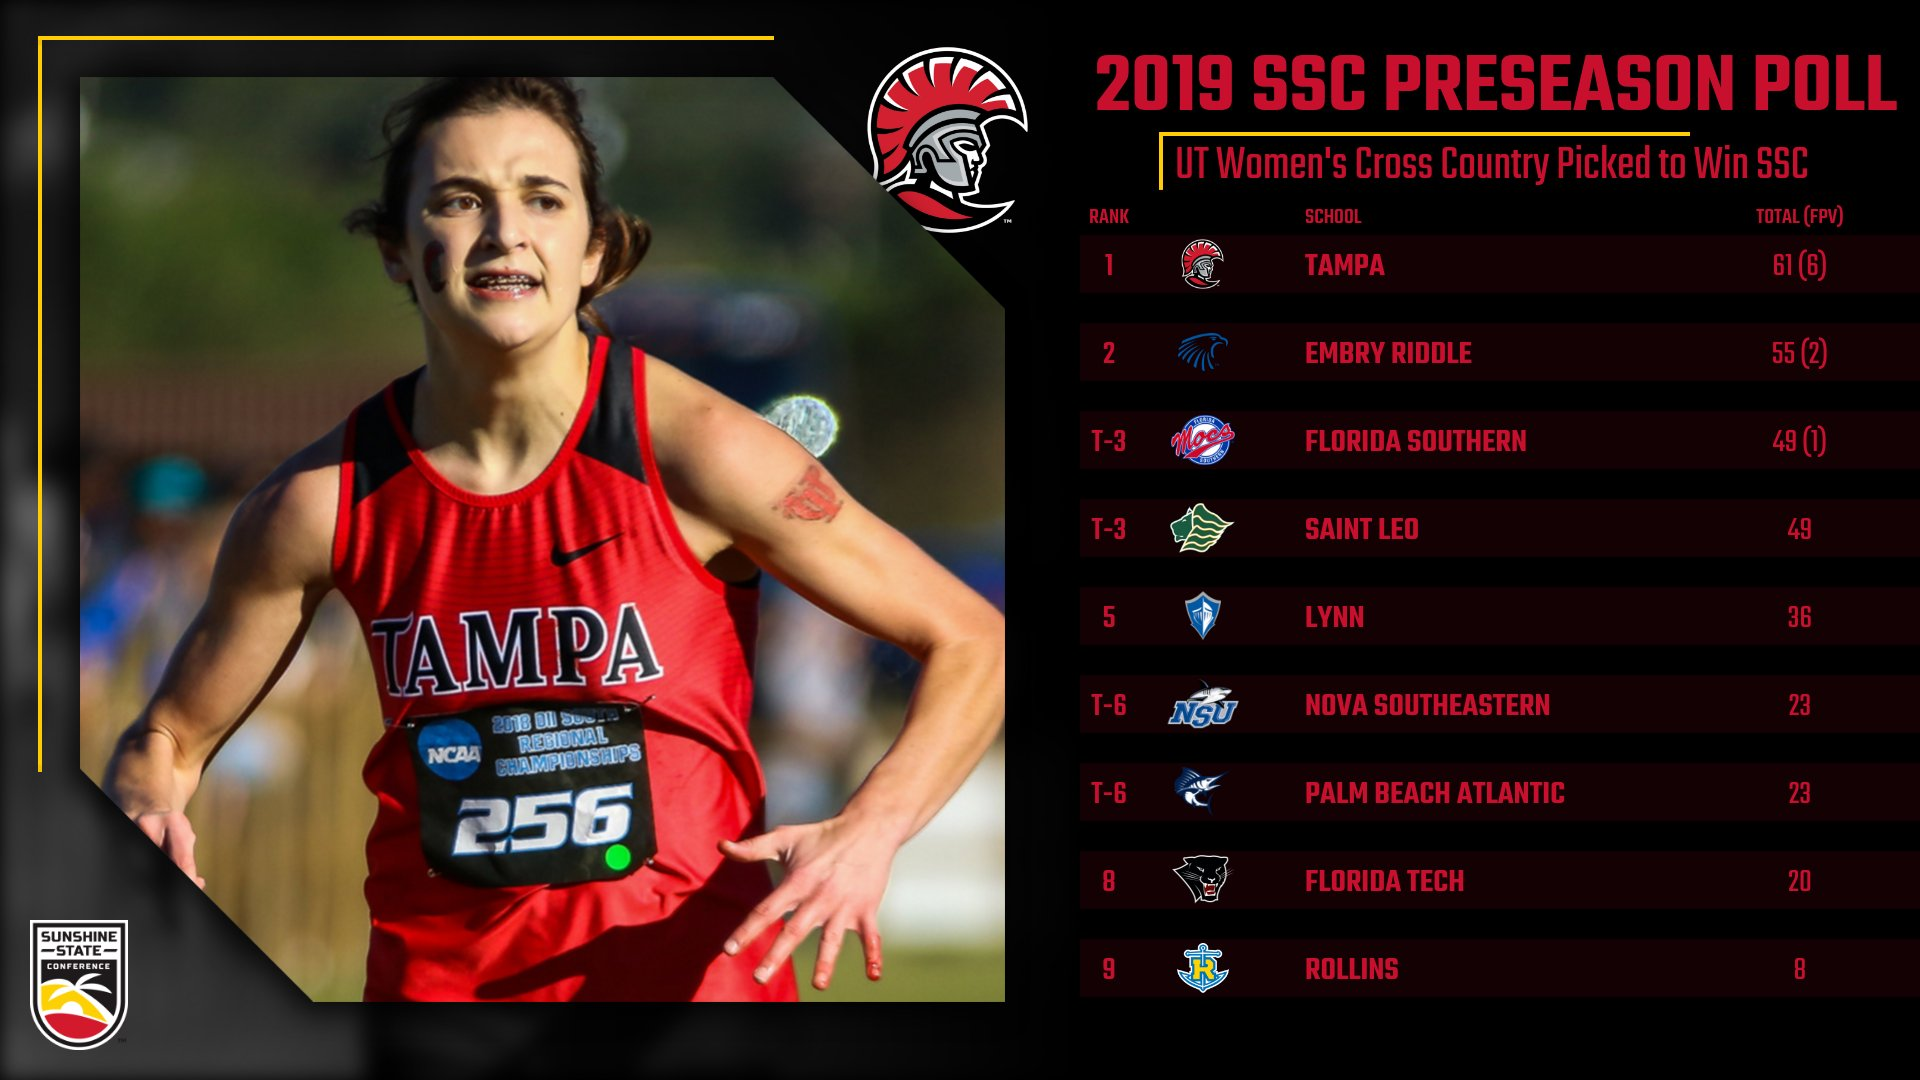 Tampa Picked to Win SSC Women's Cross Country Title